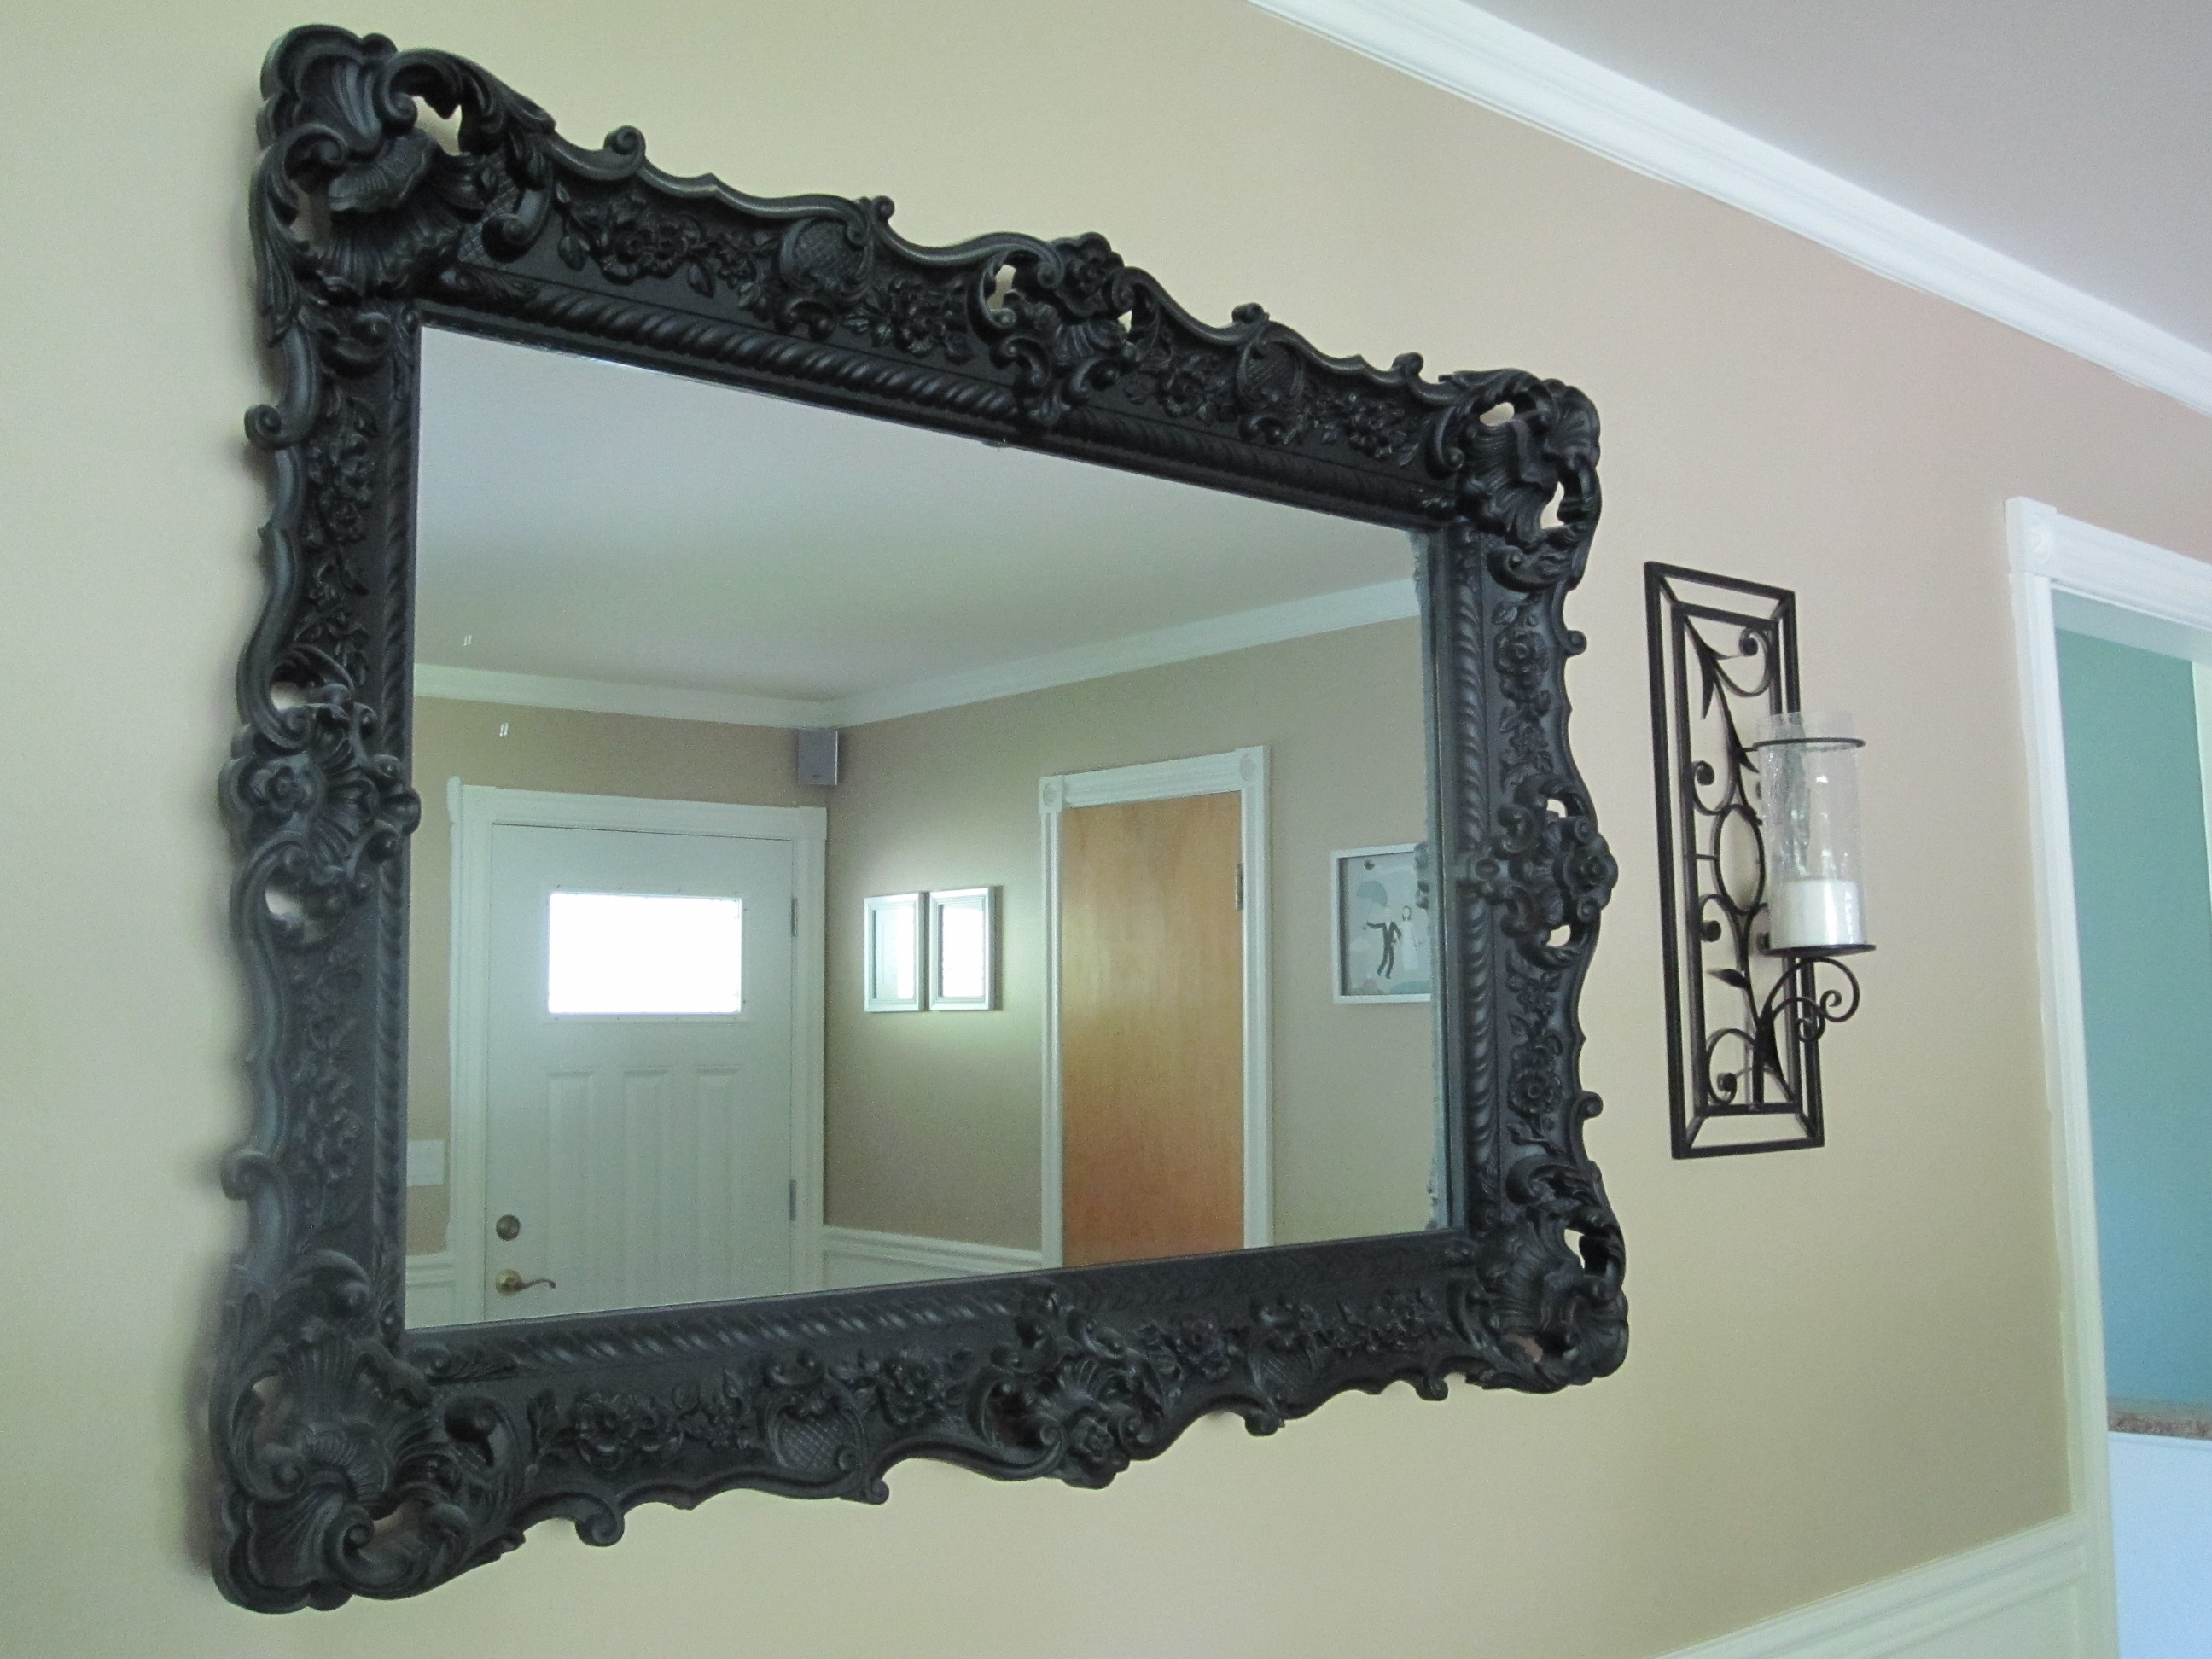 Big Mirrors For Sale 38 Cool Ideas For Mirror Harpsoundsco Intended For Large Old Mirrors For Sale (Image 4 of 15)